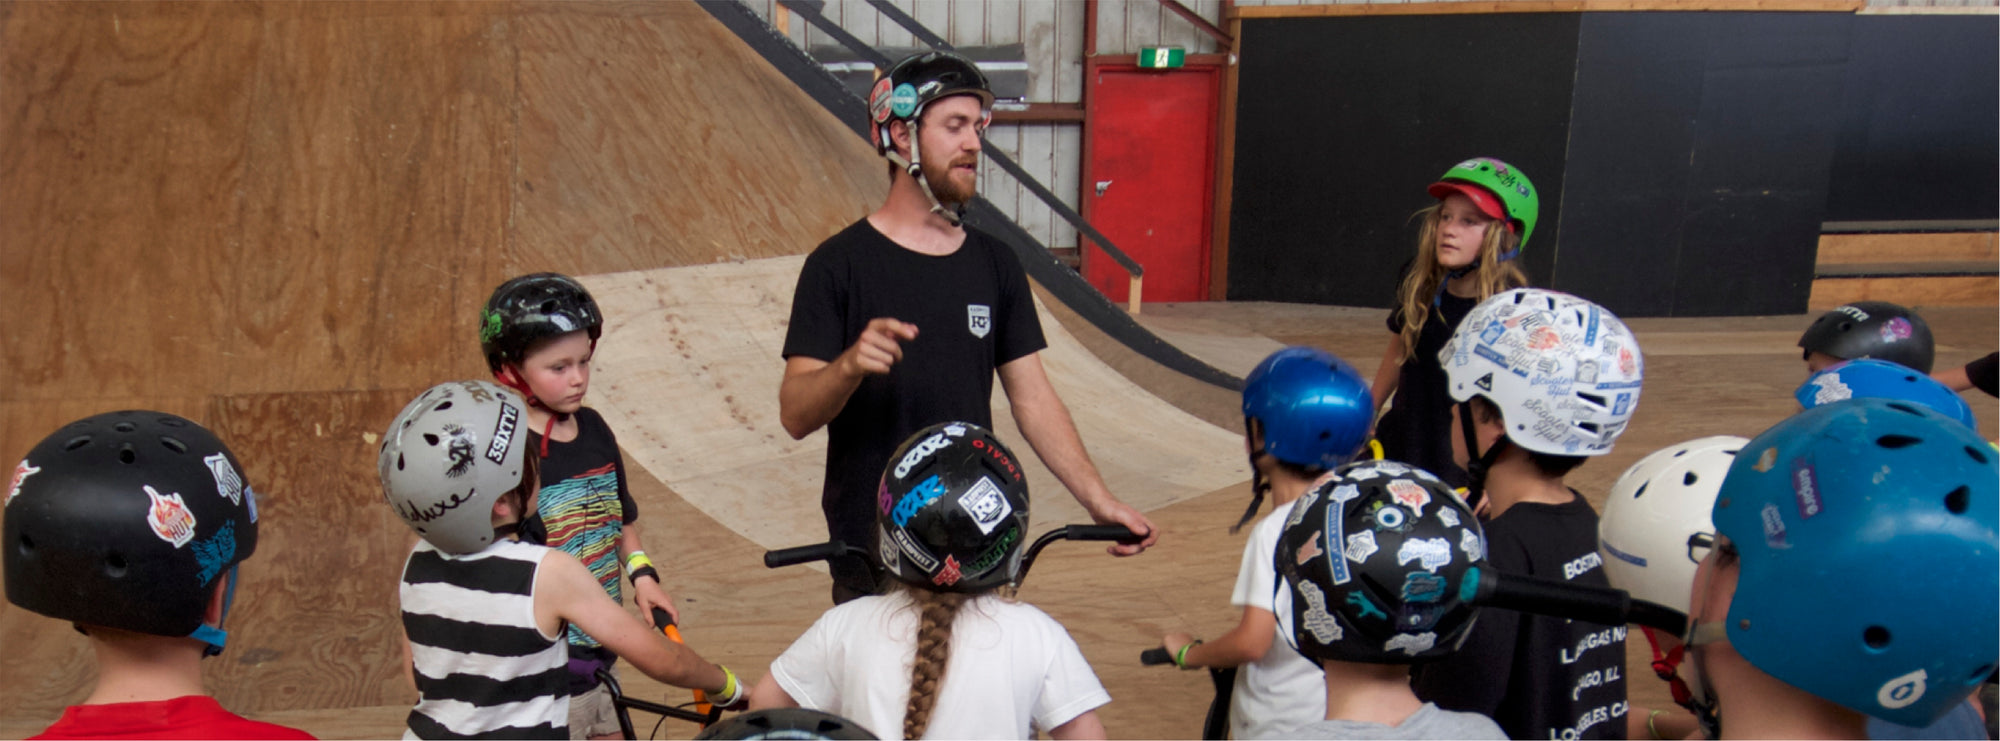 New Coaching Programs for Skate, Scooter & BMX!